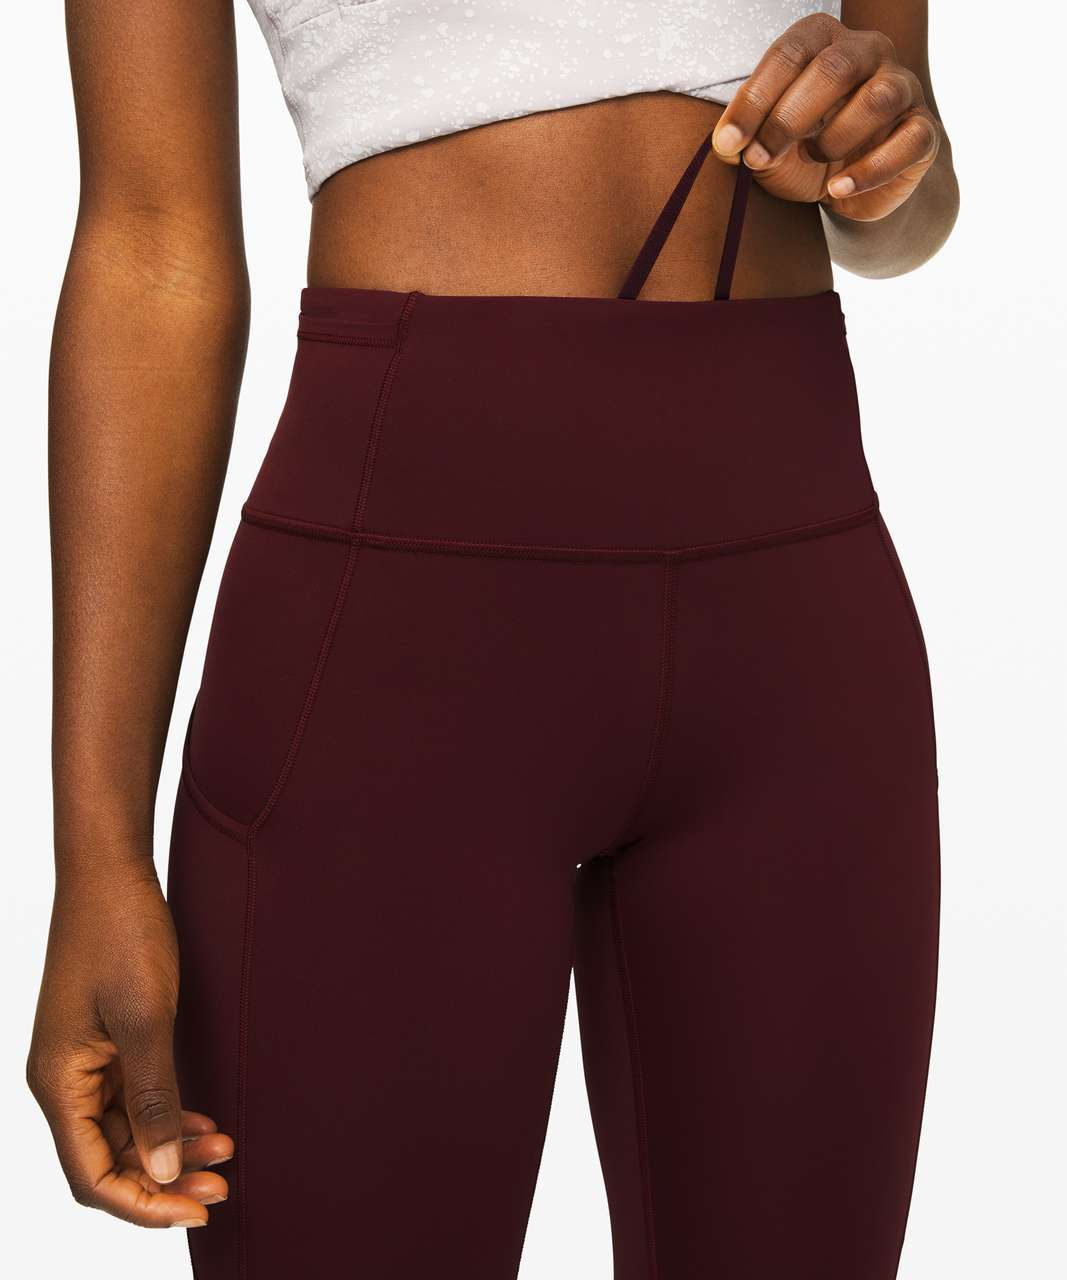 """Lululemon Fast and Free Tight II 25"""" *Non-Reflective Nulux - Garnet"""